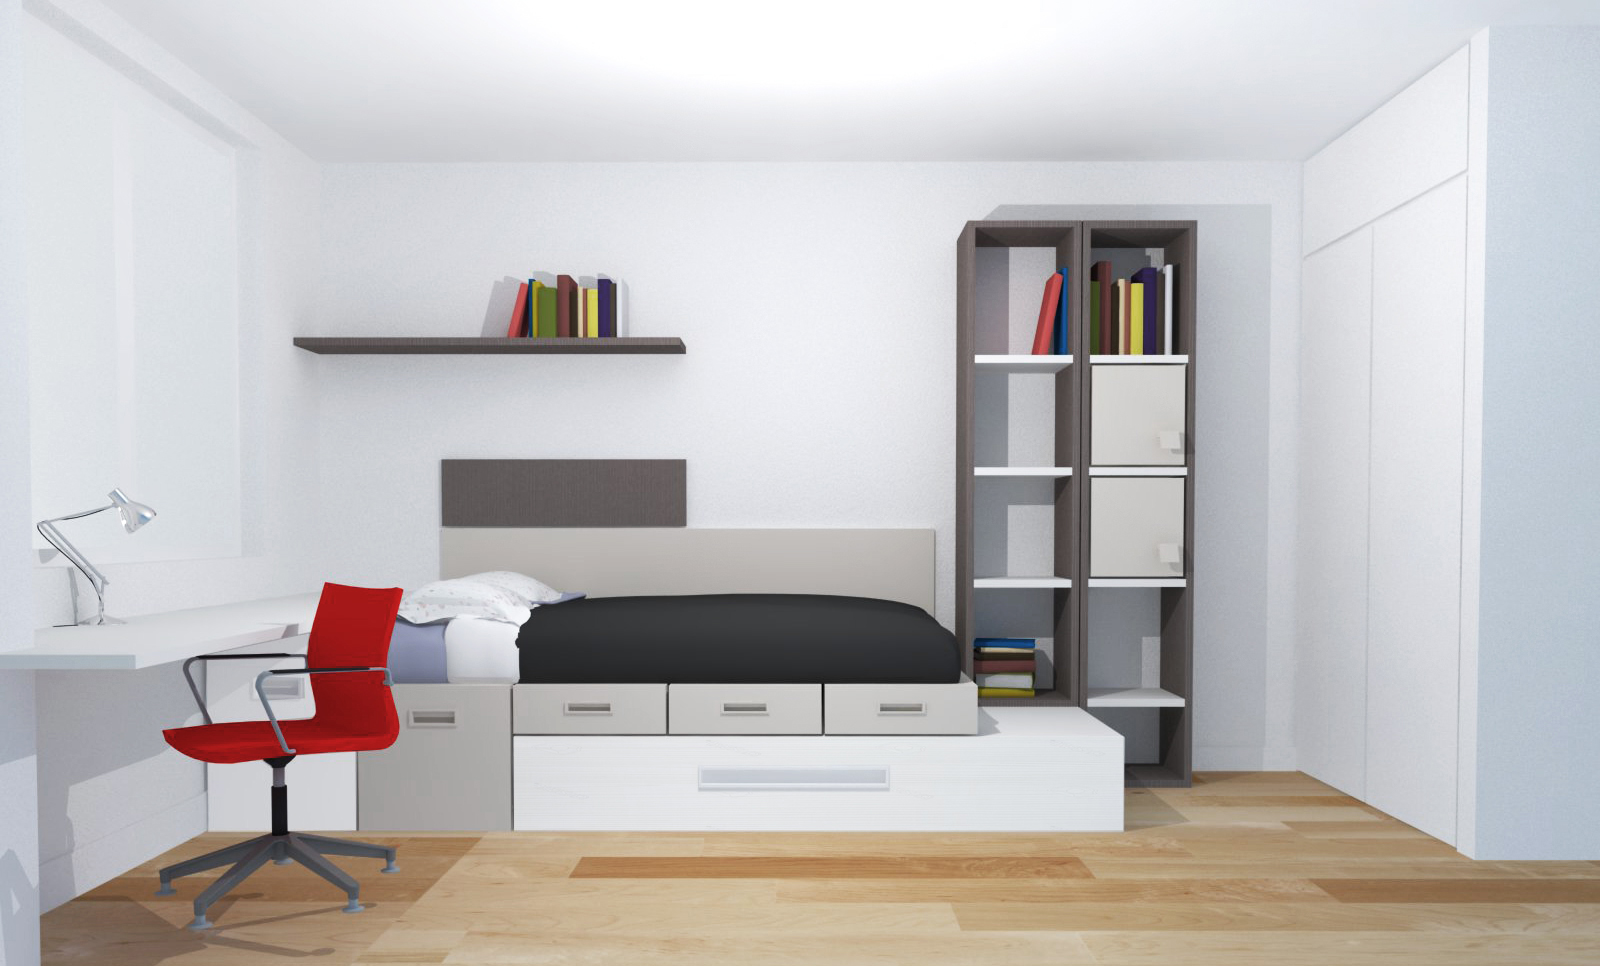 Camas dormitorio juvenil ideas de disenos for Muebles adama